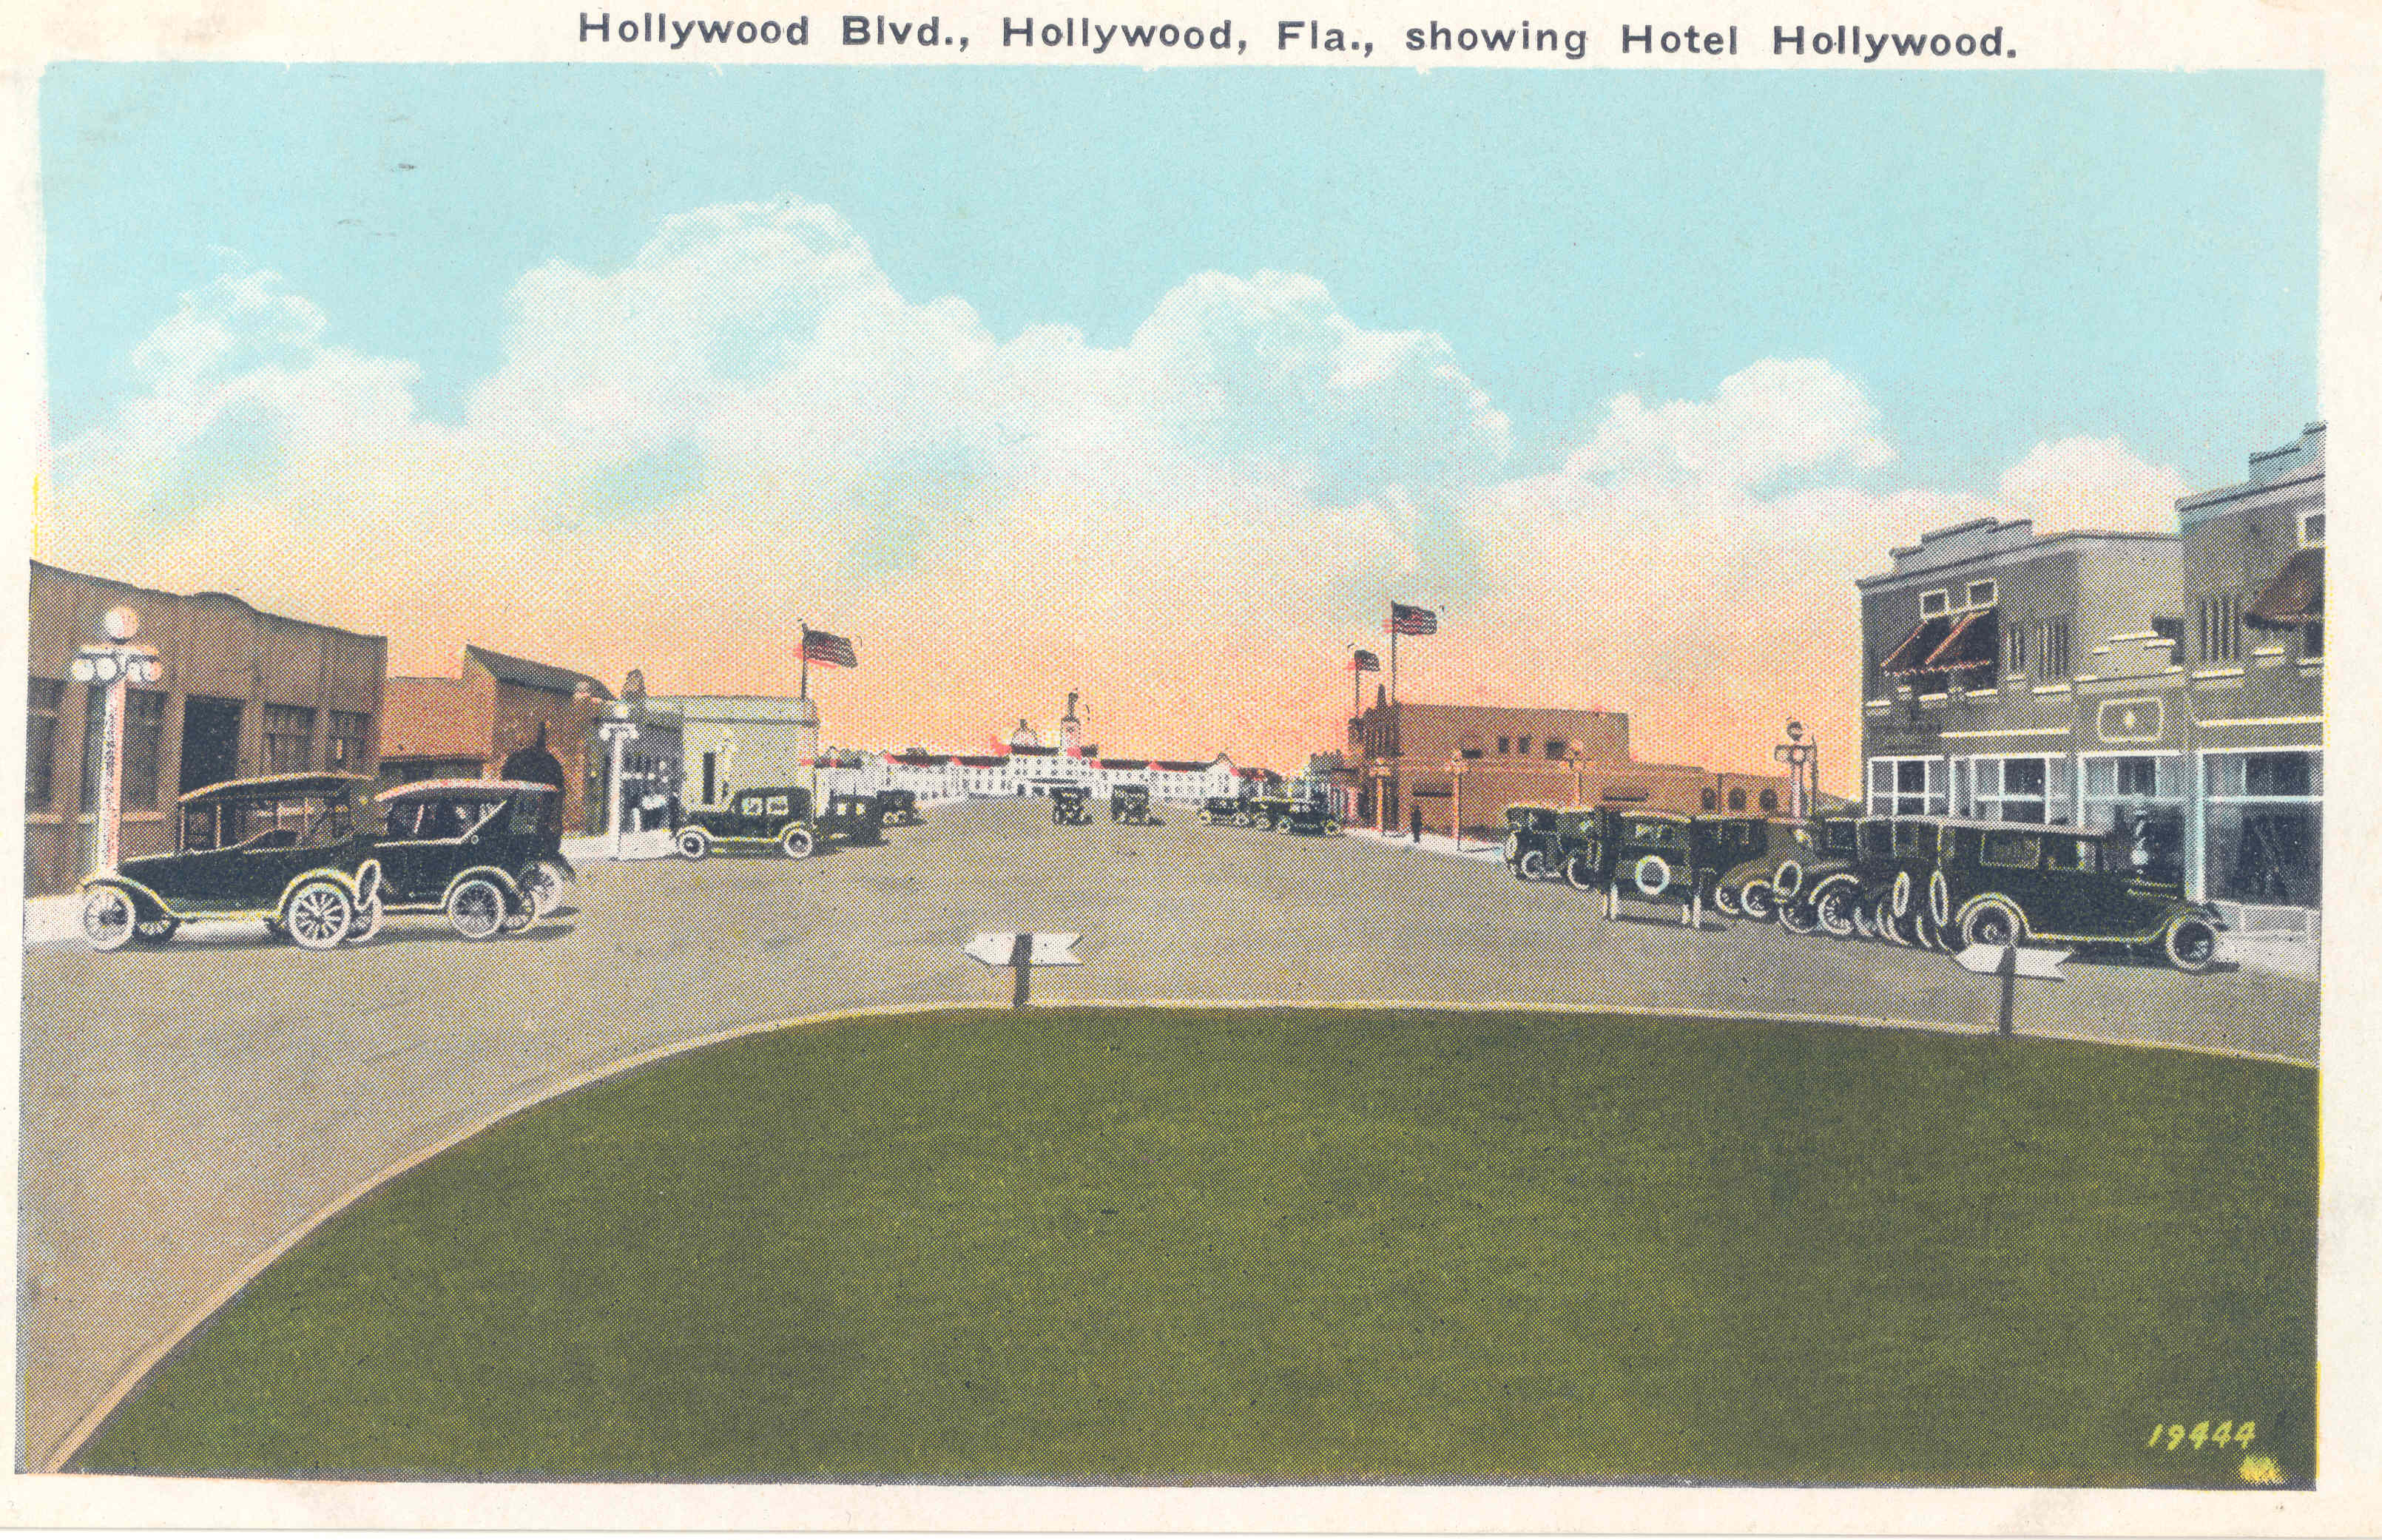 Hollywood Blvd., Showing Hotel